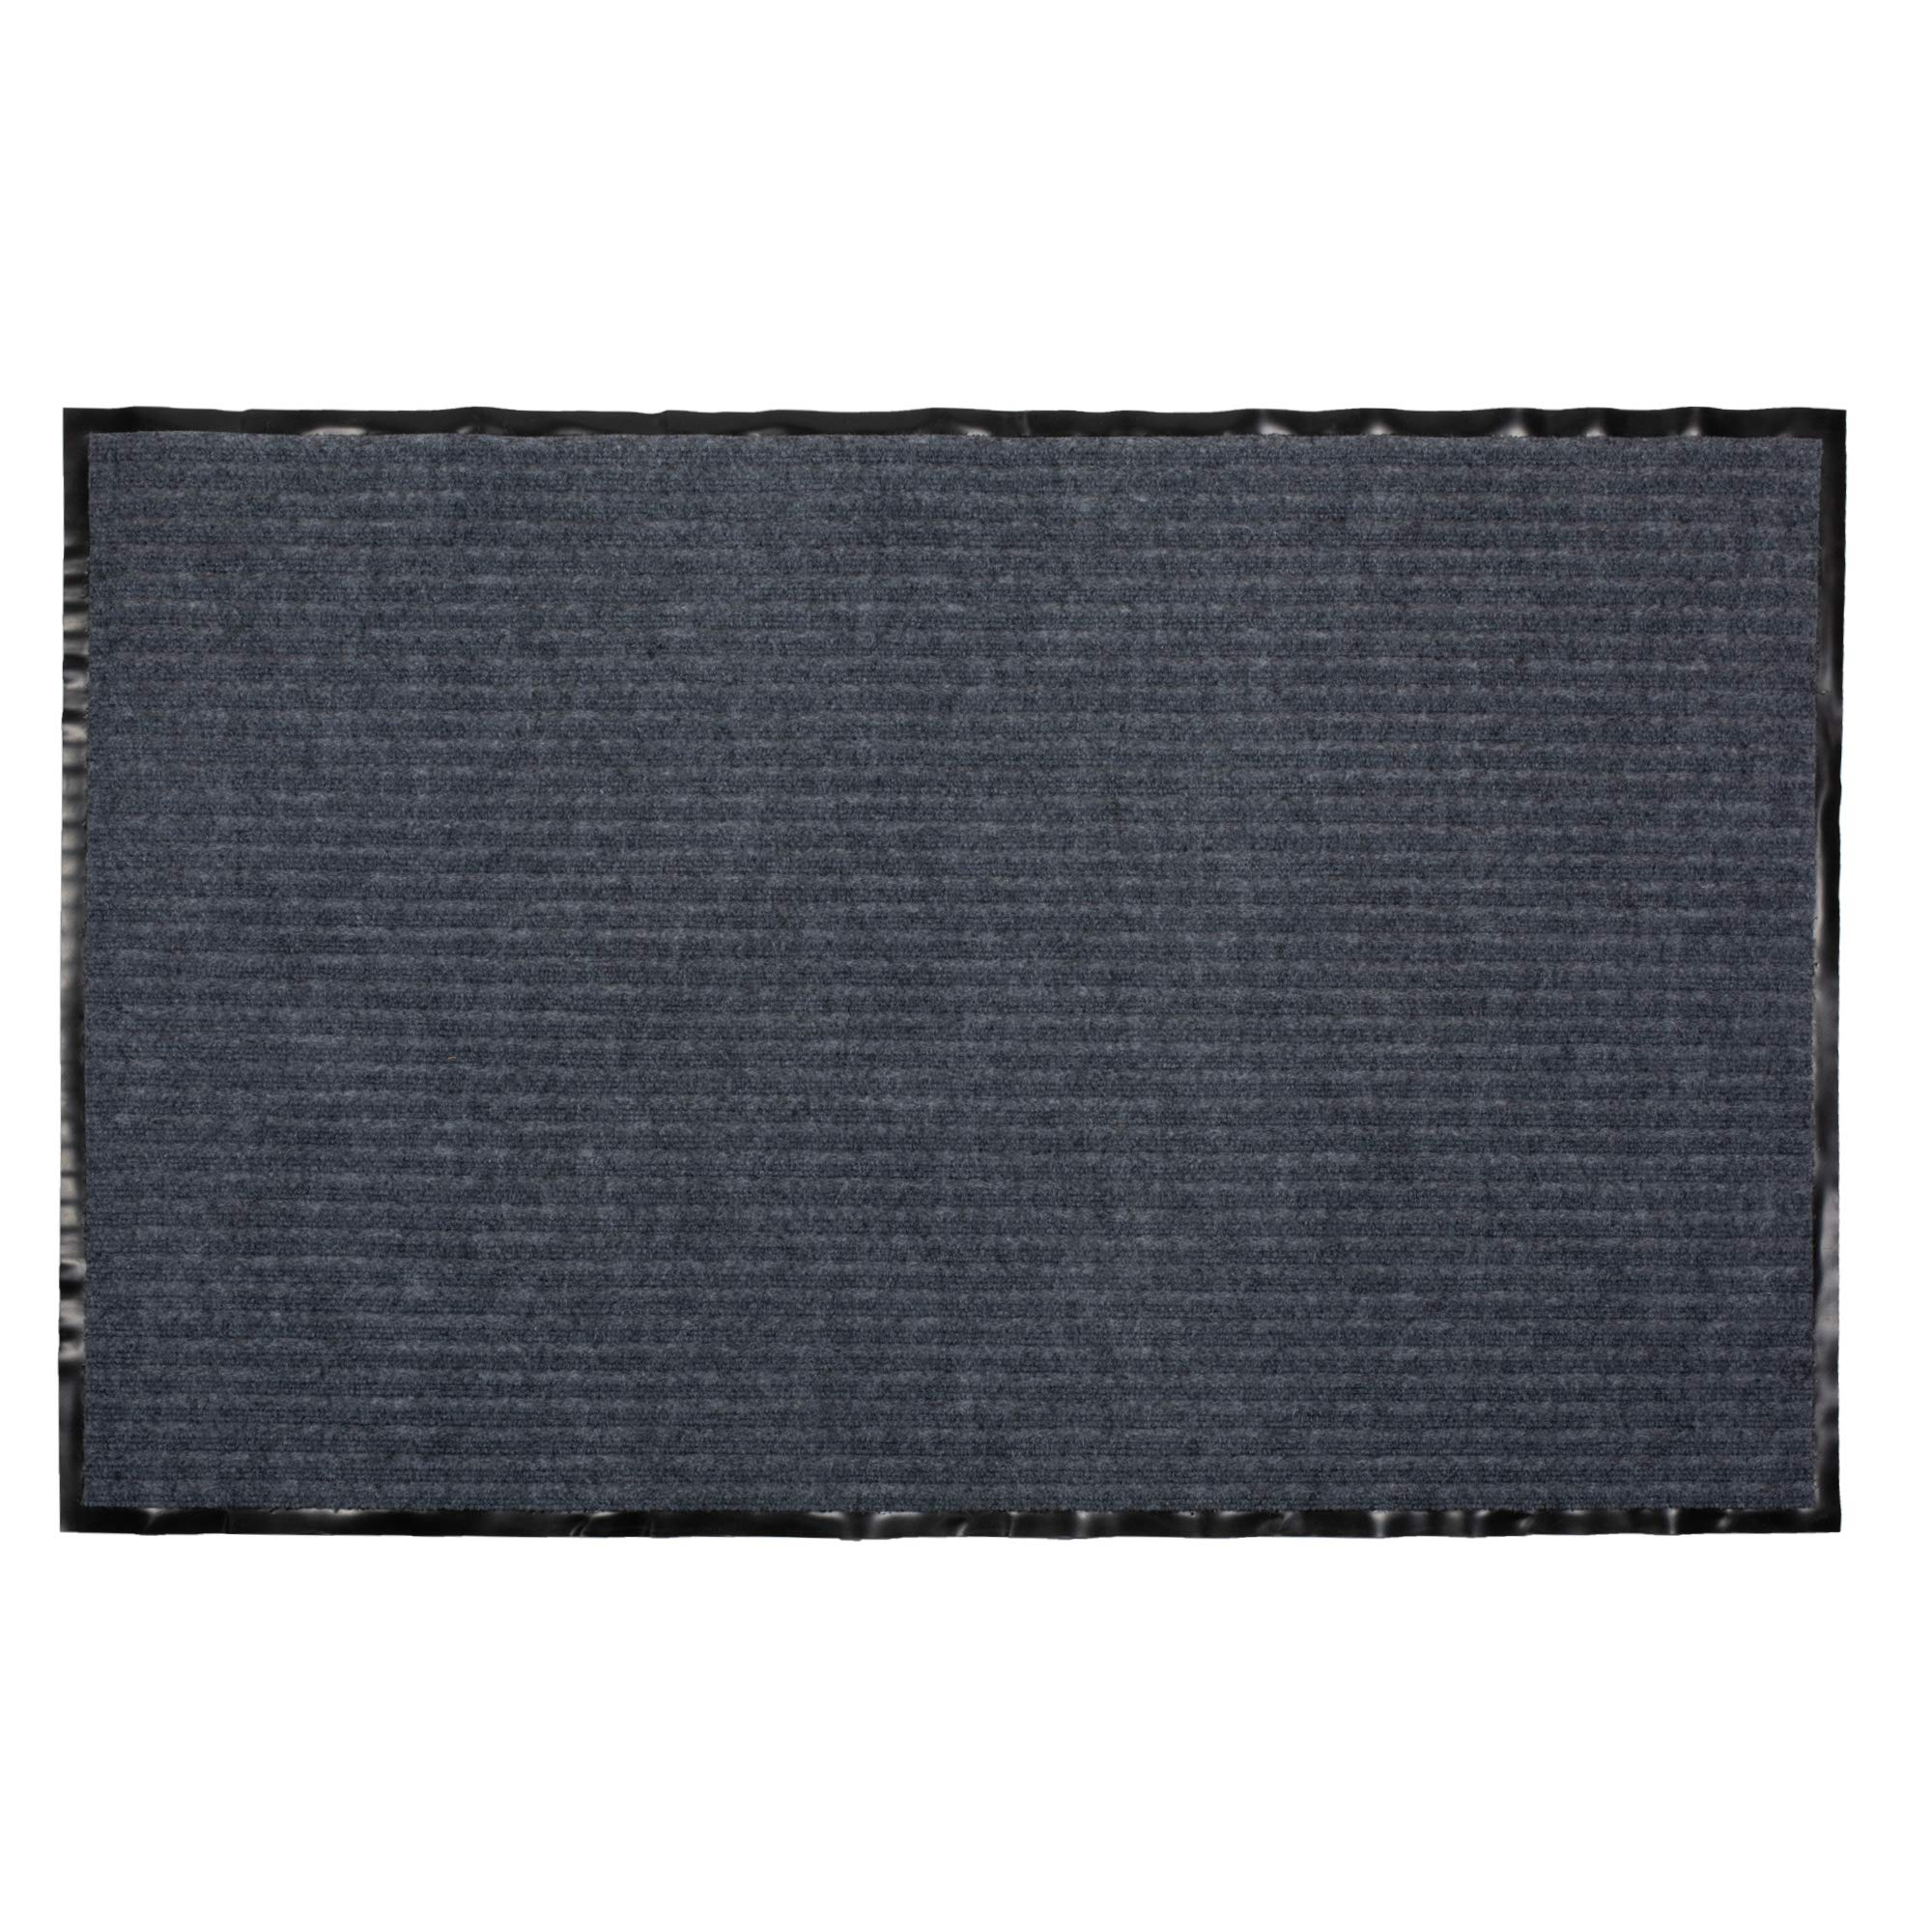 DII Durable Low Profile, Pet Friendly Indoor/Outdoor Doormat for Home or Commercial Use, 30x48, Gray Utility Mat